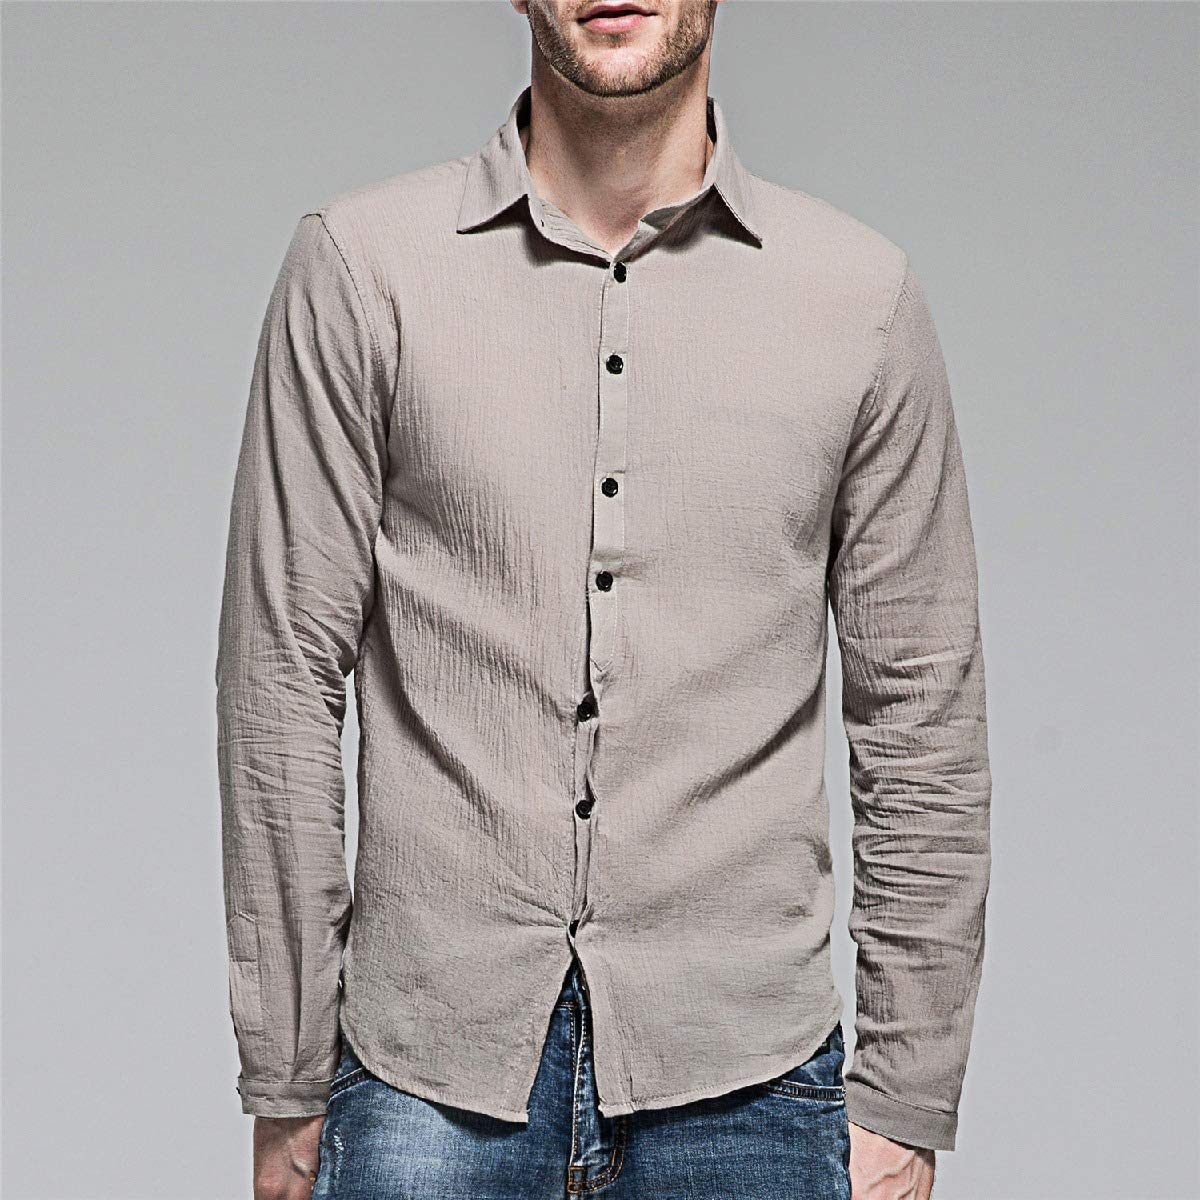 Abetteric Mens Solid Color Linen Long Sleeve Business Blouses and Tops Shirts